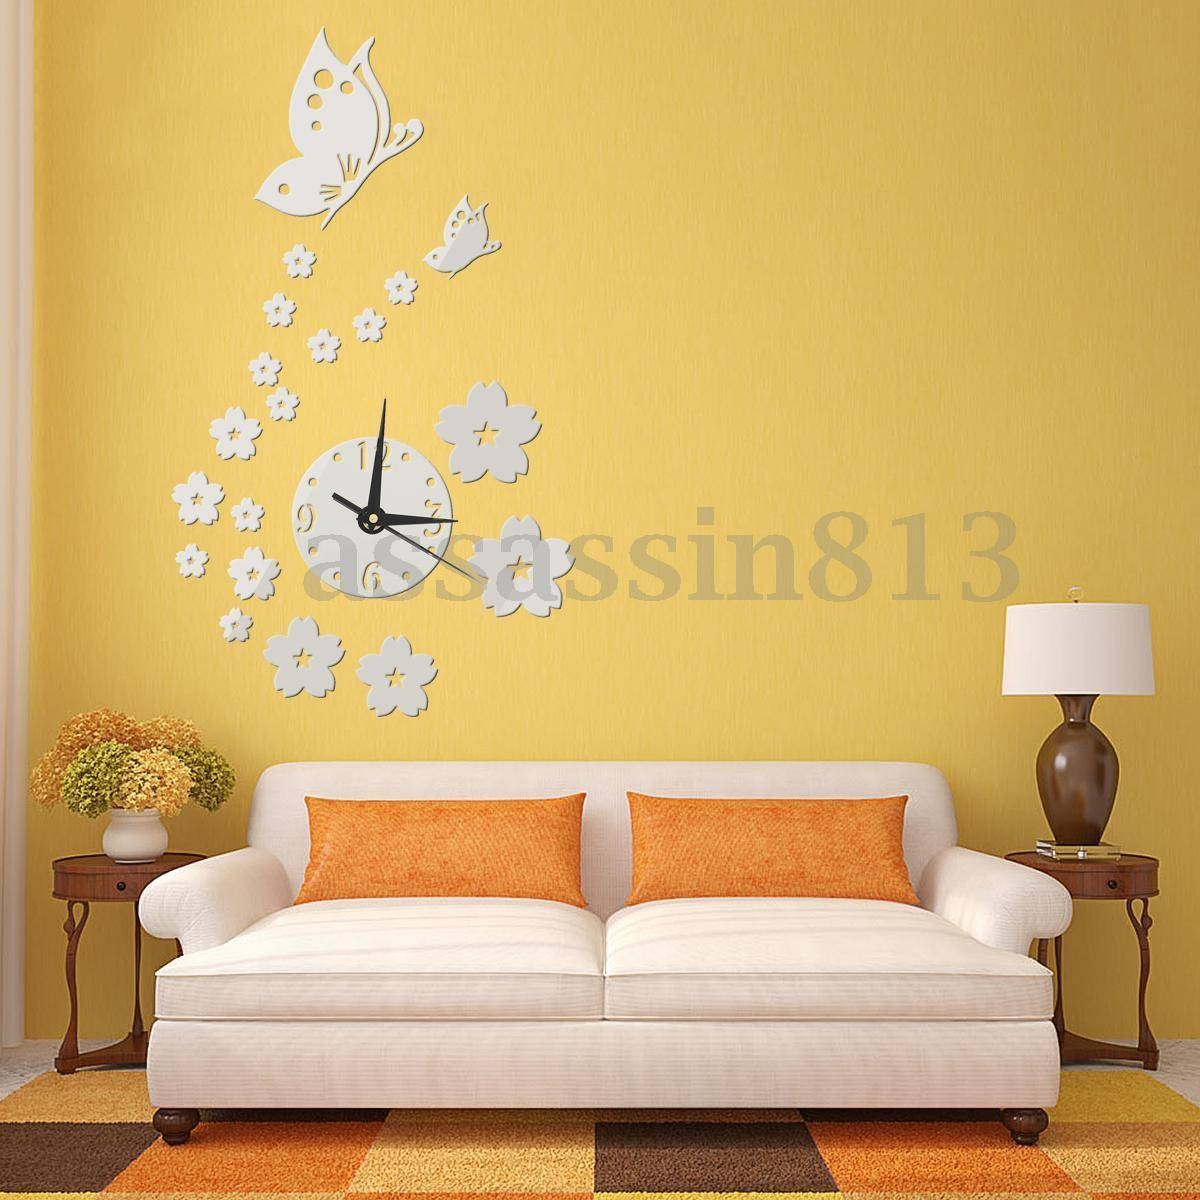 Removable Butterfly Wall Clock Diy 3D Sticker Home Office Room Within Recent 3D Removable Butterfly Wall Art Stickers (View 14 of 20)